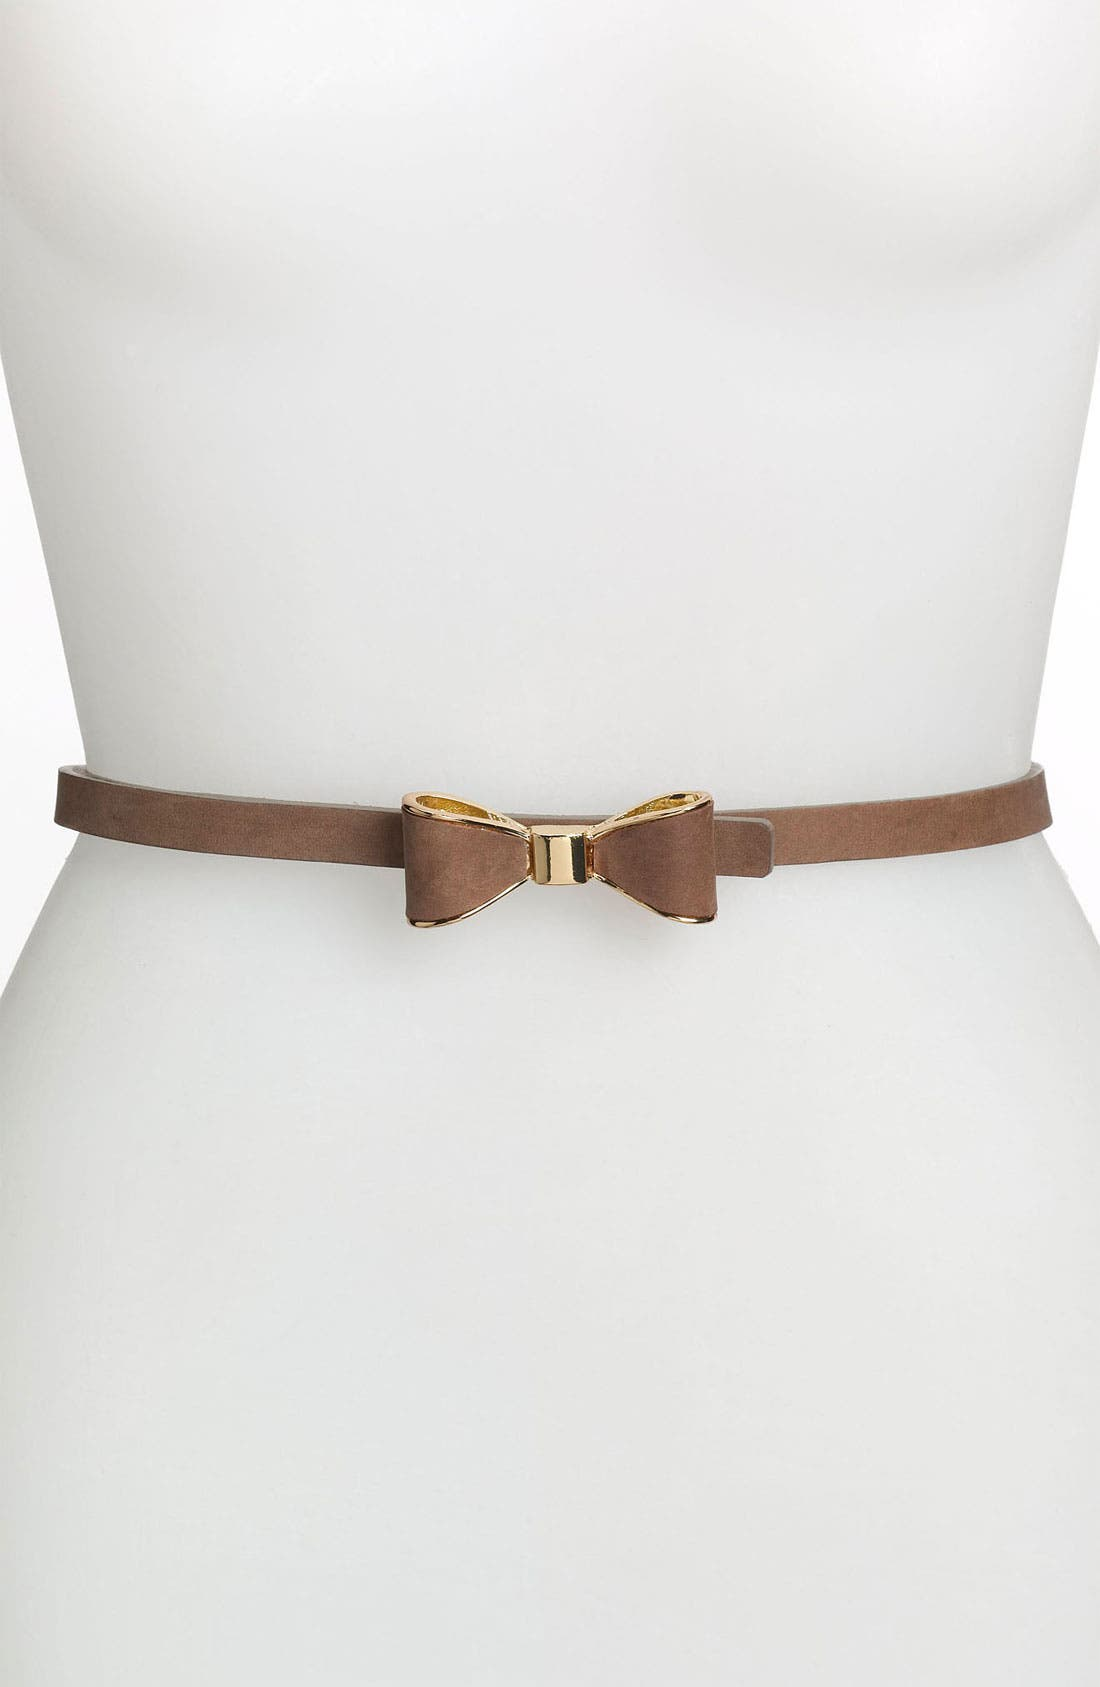 Main Image - Tarnish Skinny Suede Bow Belt